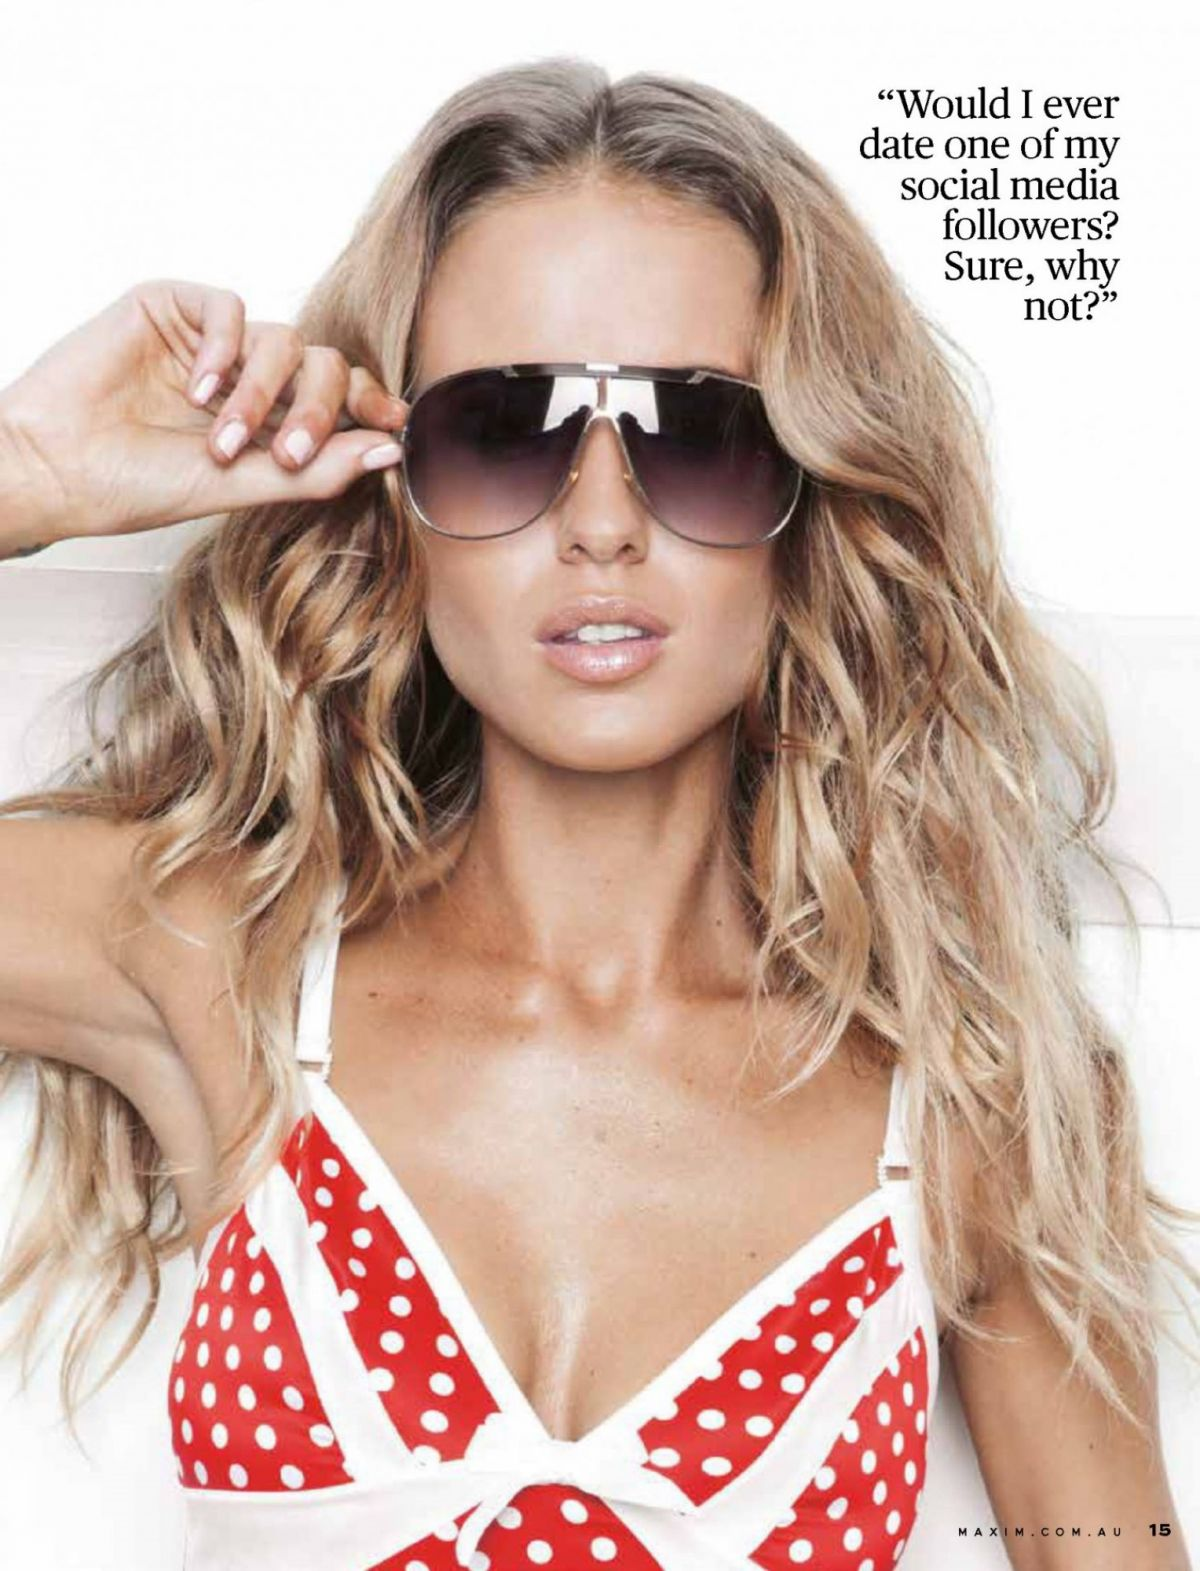 RENEE SOMERFIELD in Maxim Magazine, Australia May 2015 Issue